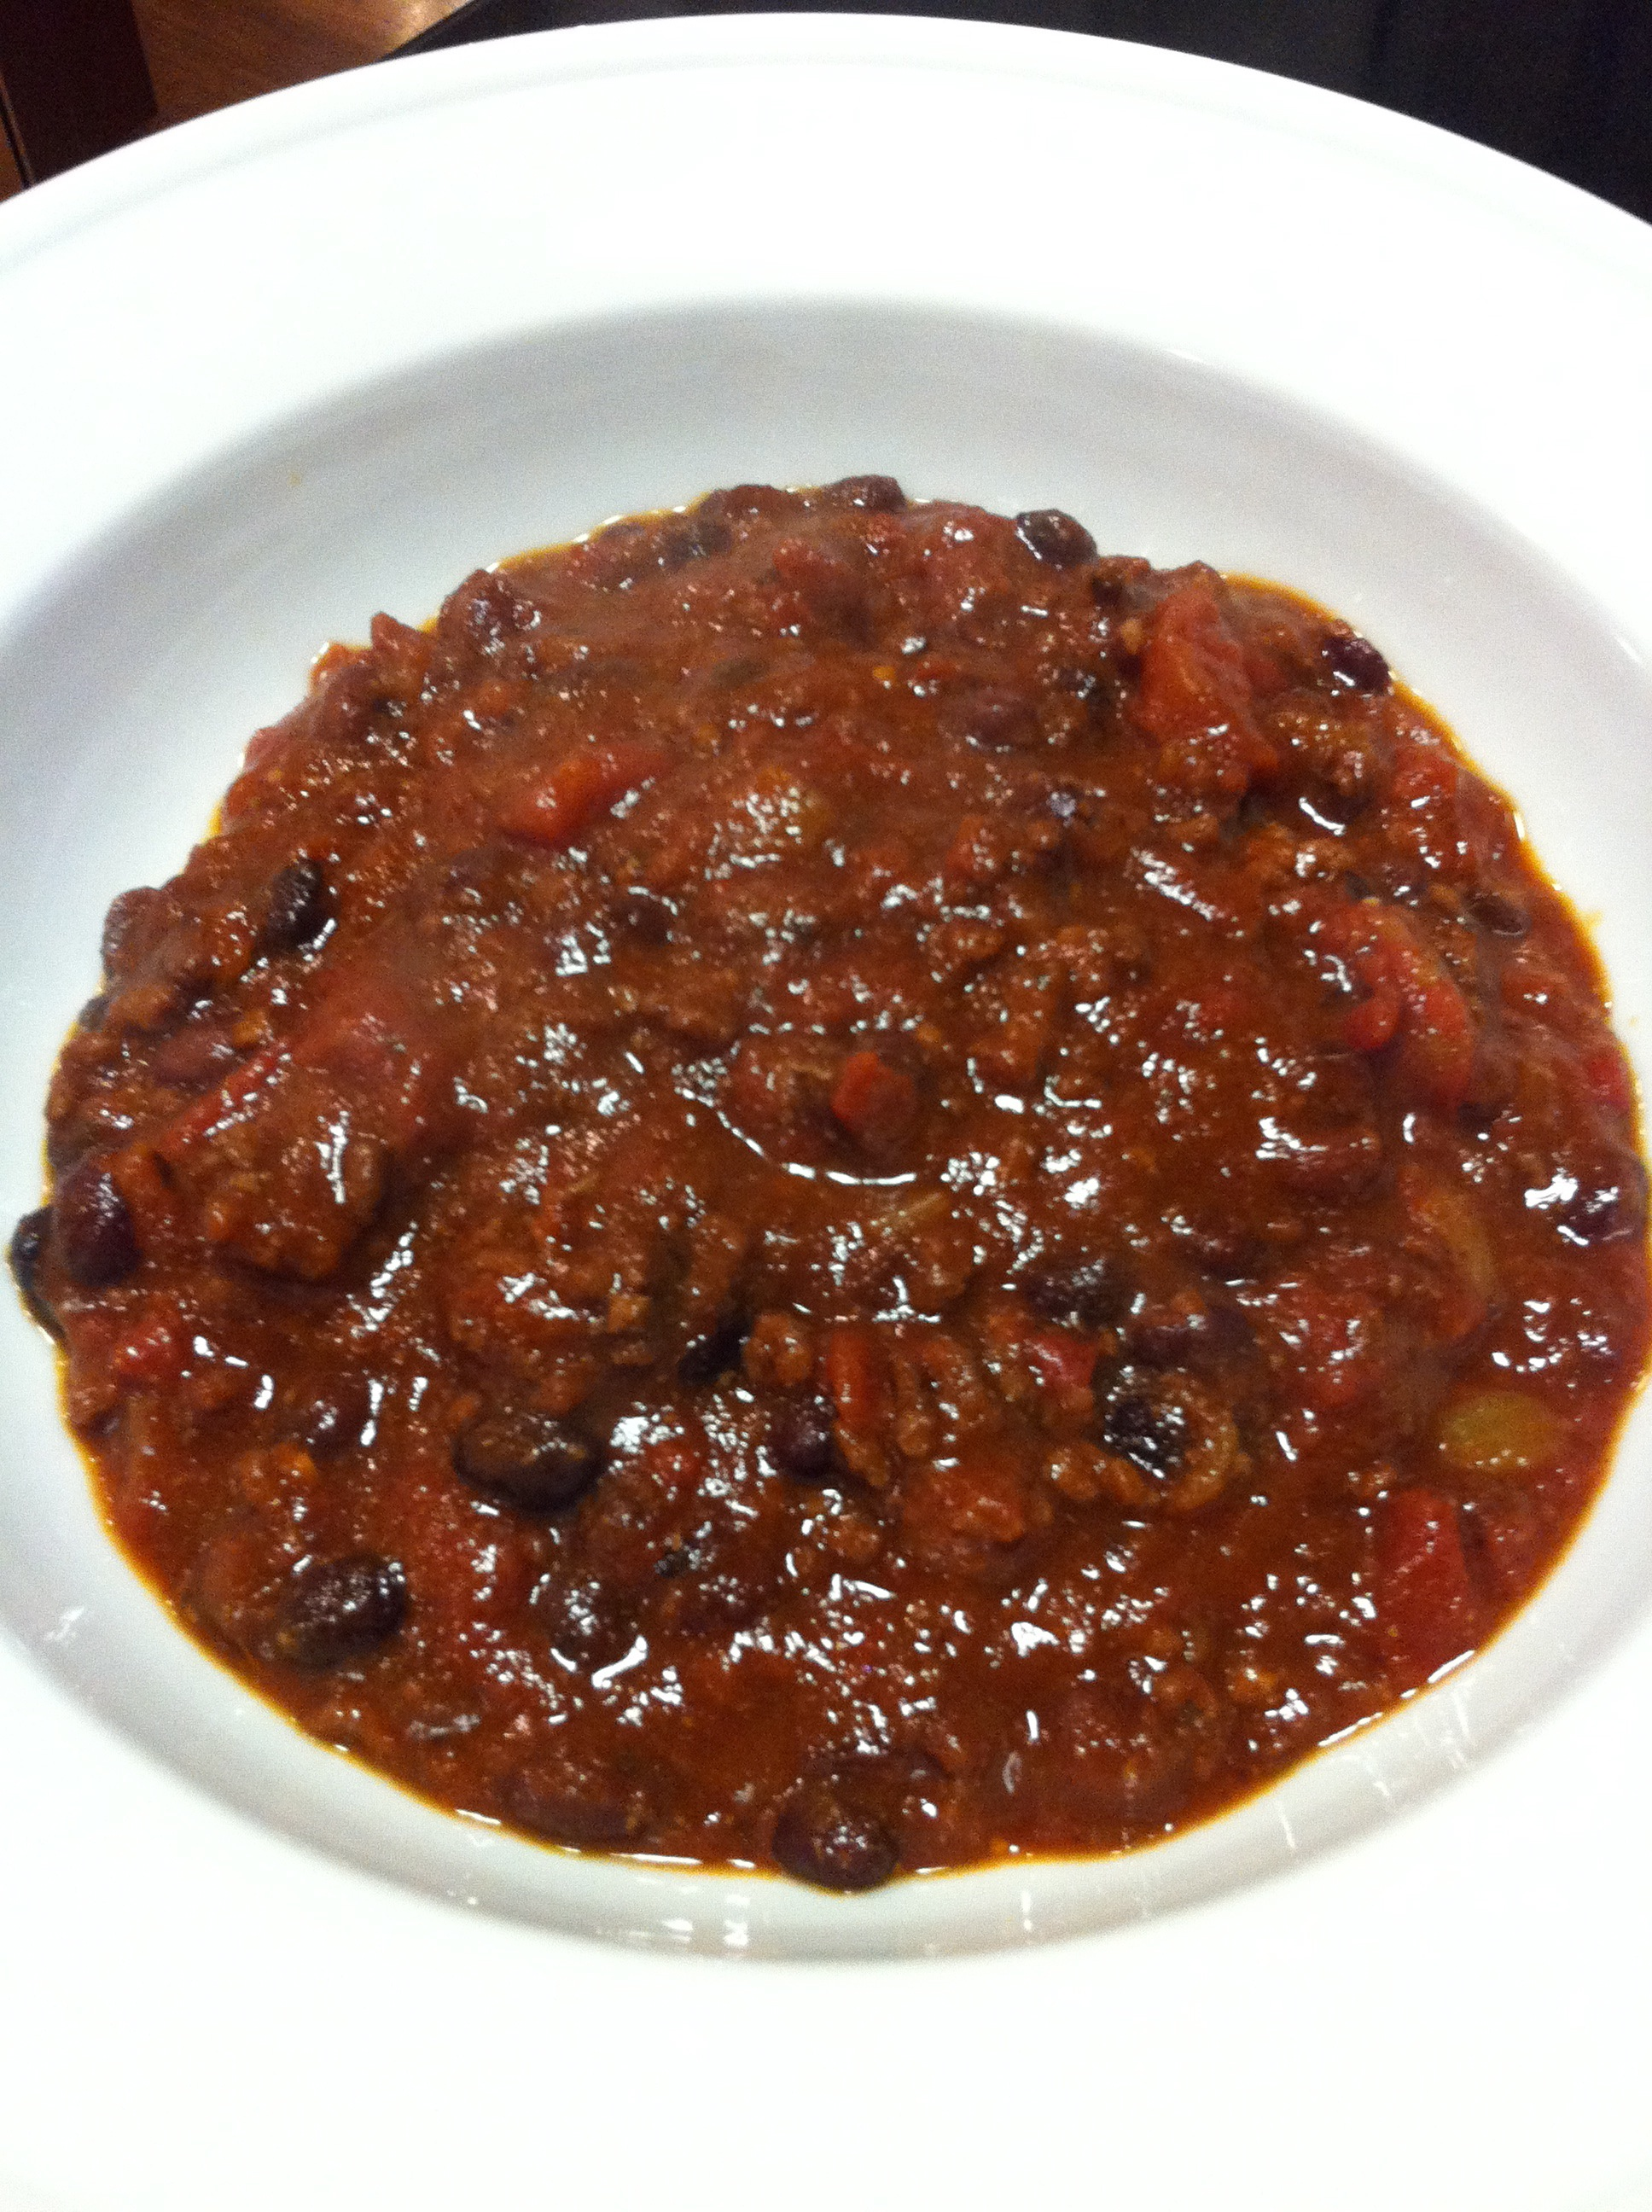 The Food Lover's Award-Winning Black Bean Chili (Photo Credit: Adroit Ideals)